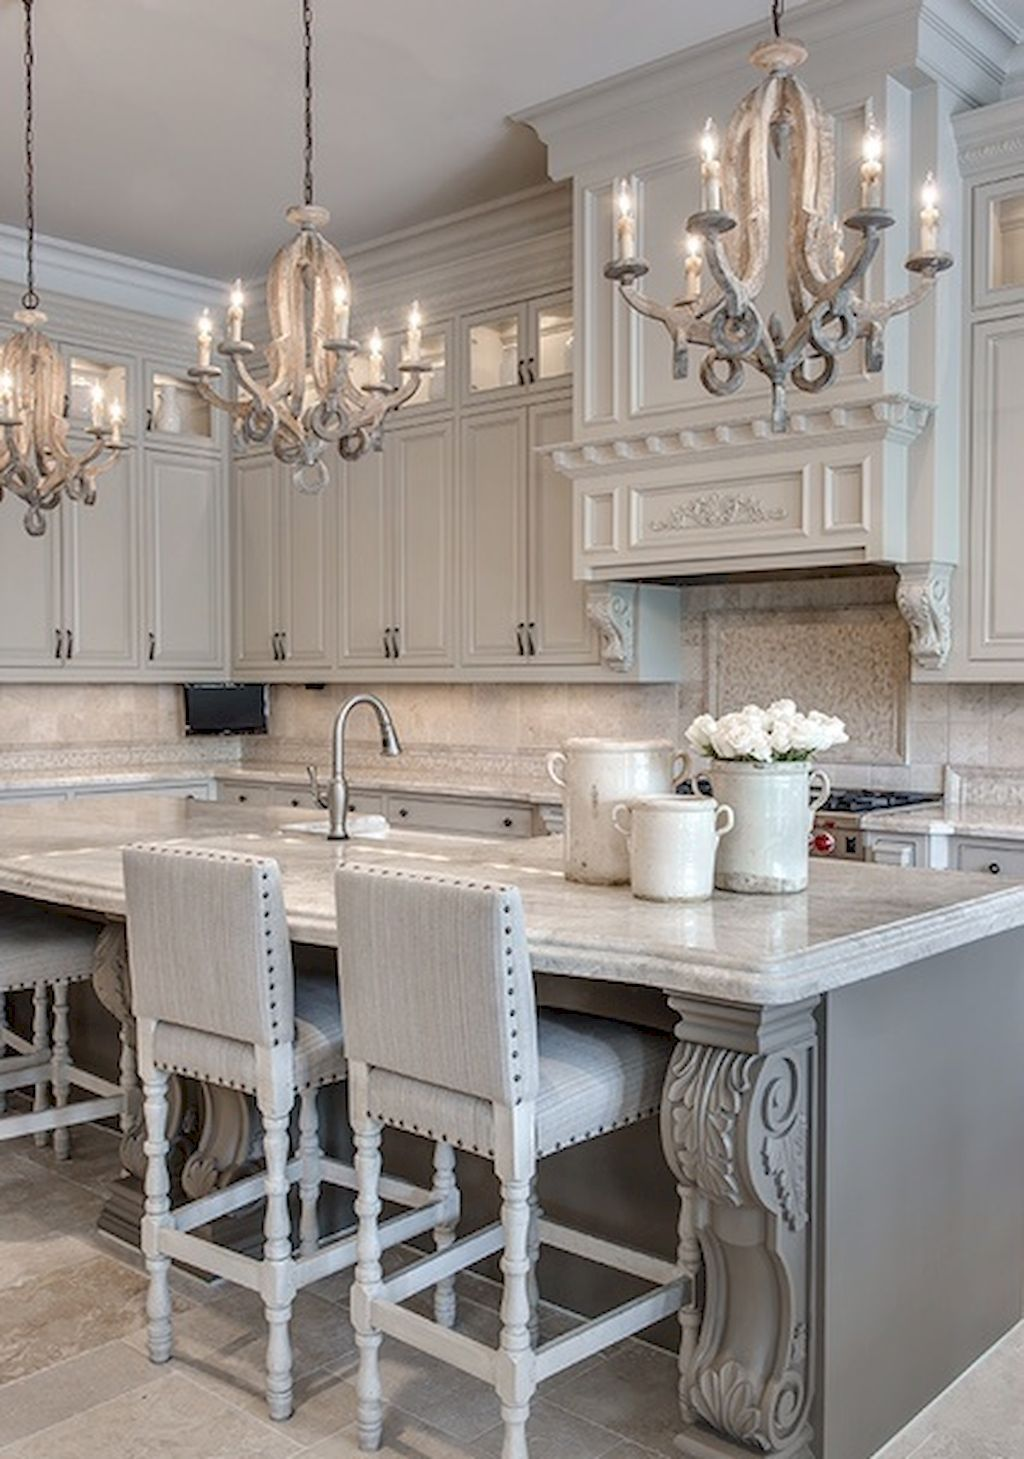 Incredible French Country Kitchen Design Ideas 4  For The Home Mesmerizing In Home Kitchen Design Inspiration Design